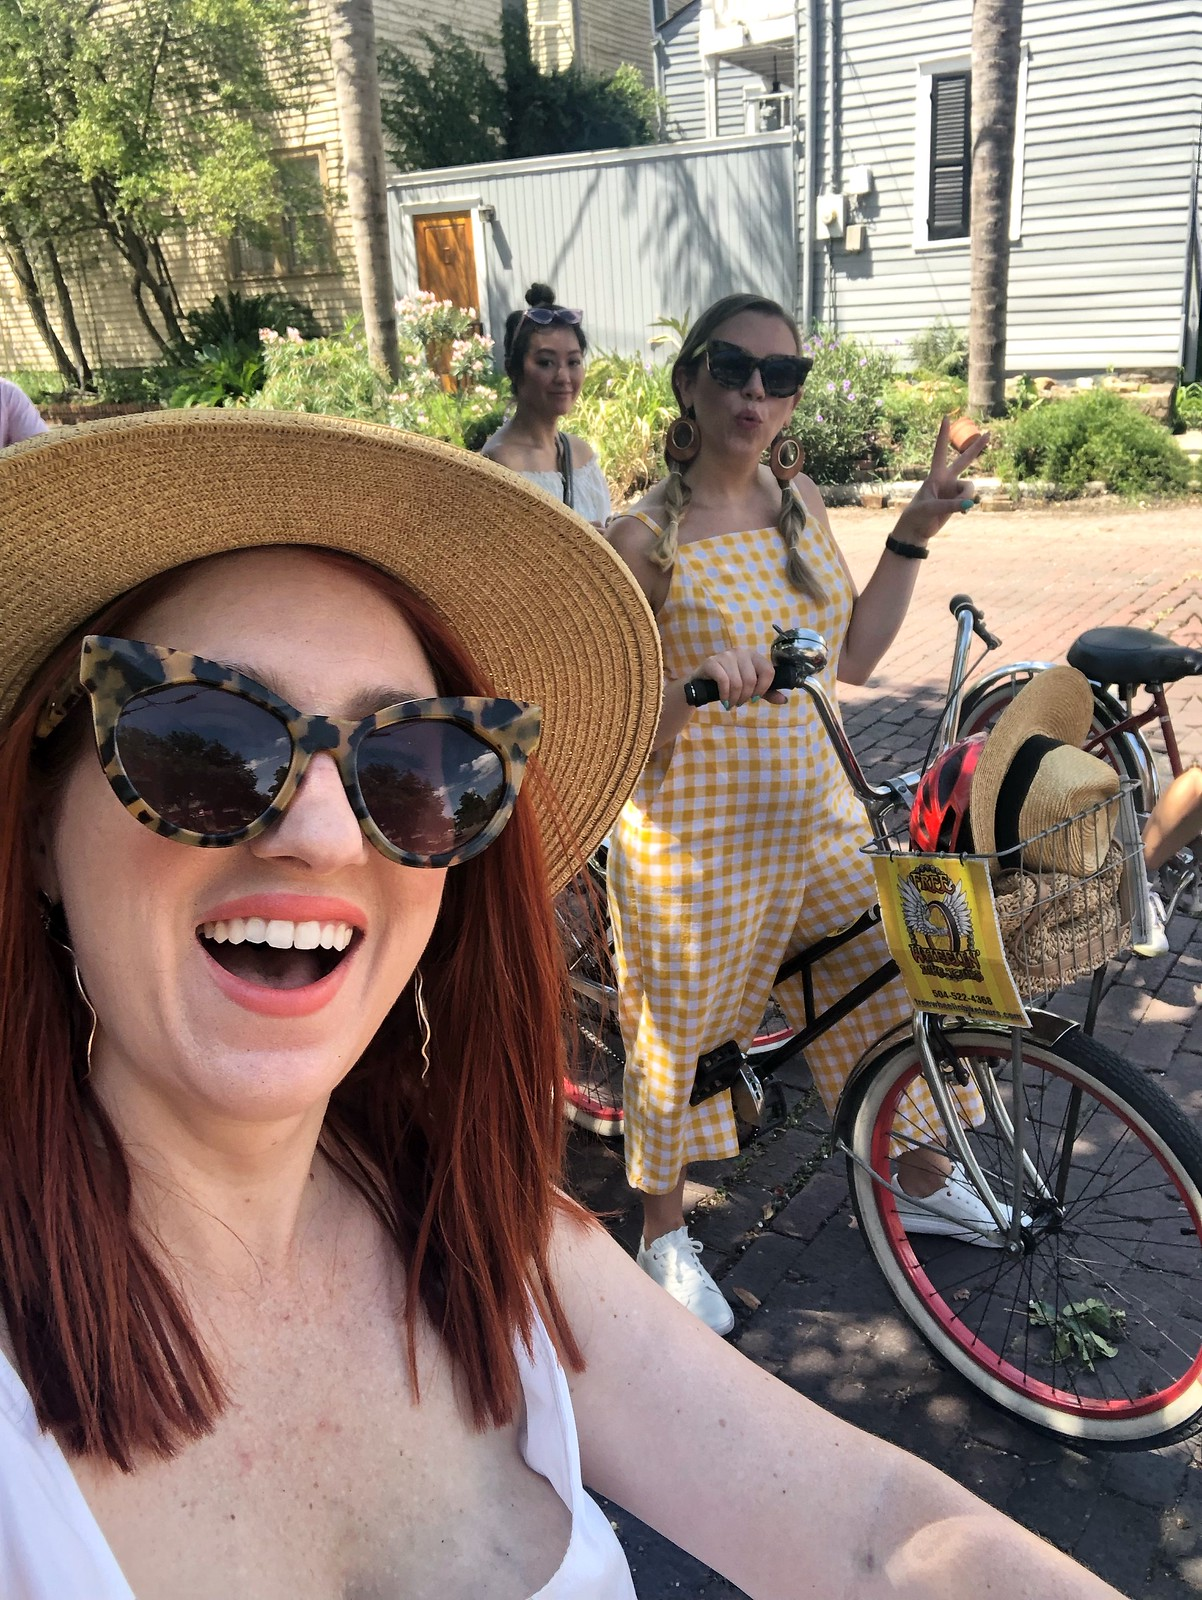 Freewheelin' Bike Tour | New Orleans Bike Tour | How to Spend 48 Hours in New Orleans in the Summer | New Orleans Travel Guide | What to do in New Orleans | 2 Days in New Orleans | Best Things to do in New Orleans | First Timer's Guide to NOLA | NOLA Travel Guide | 2 Day Itinerary for New Orleans